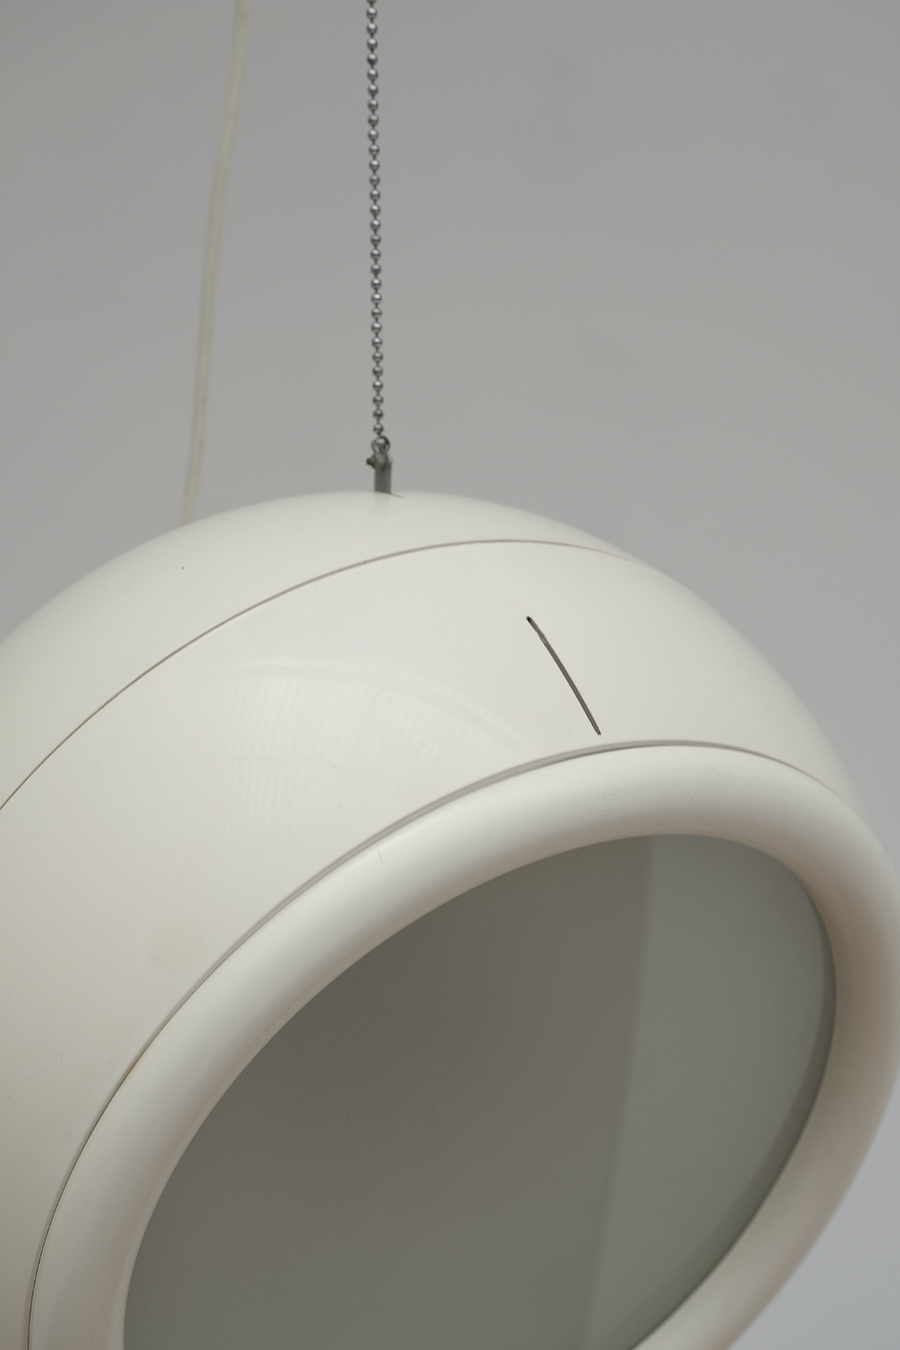 Pallade Lamp by Studio Tetrarch for Artemide